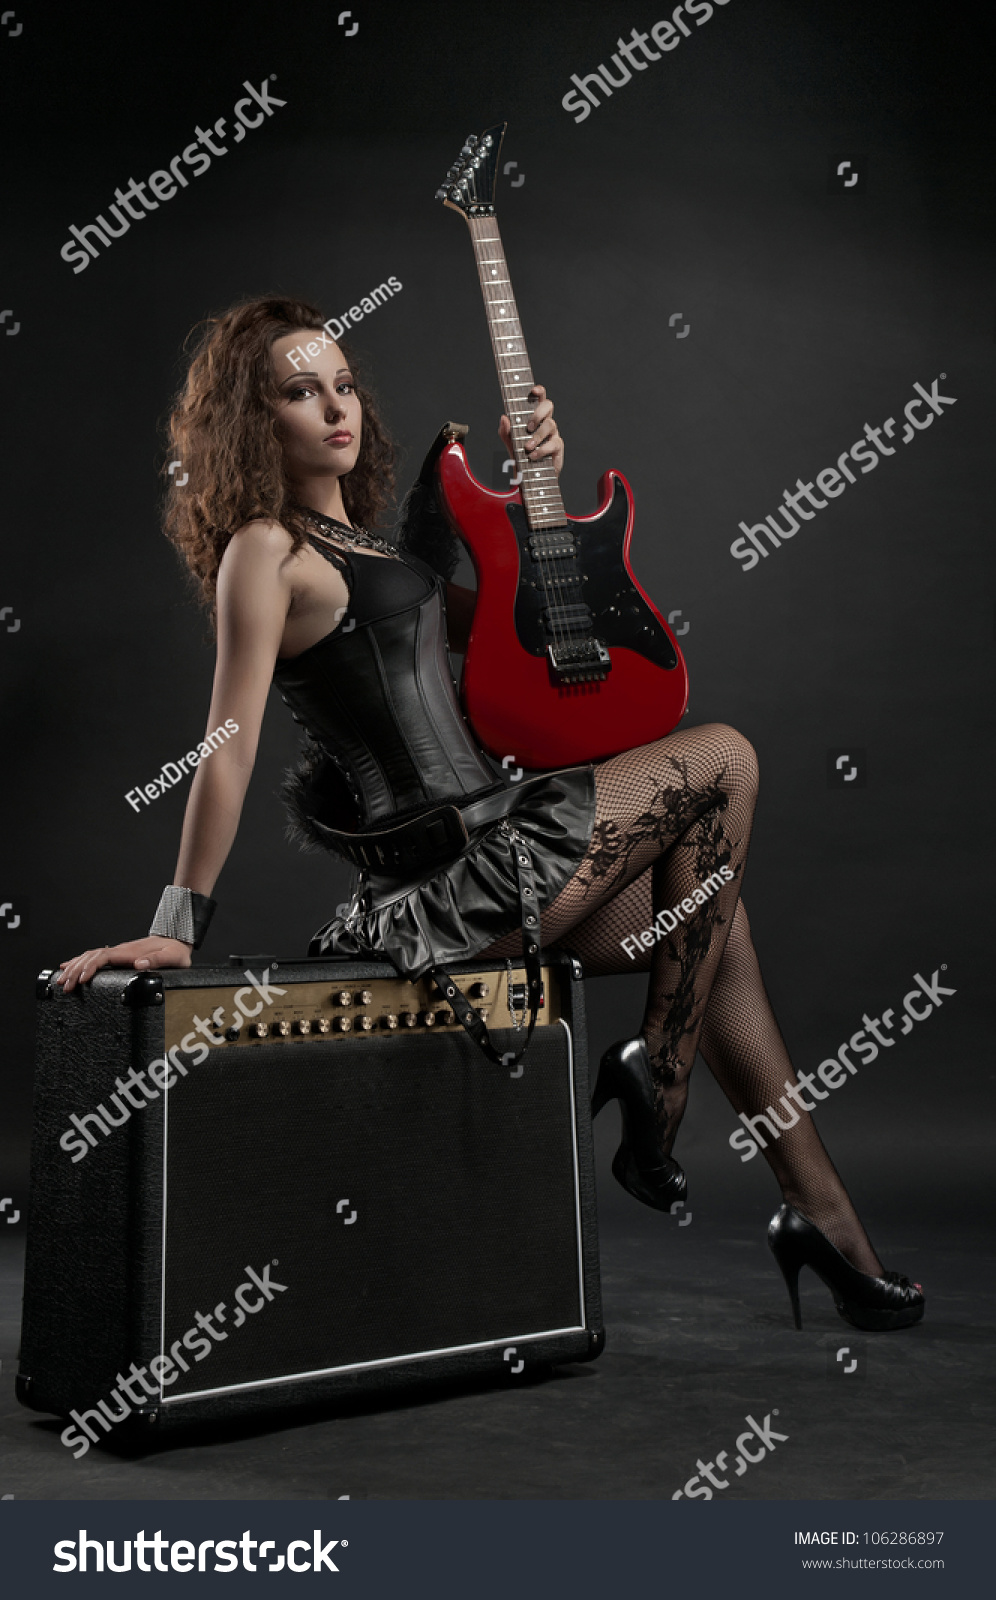 Sexy woman with red guitar